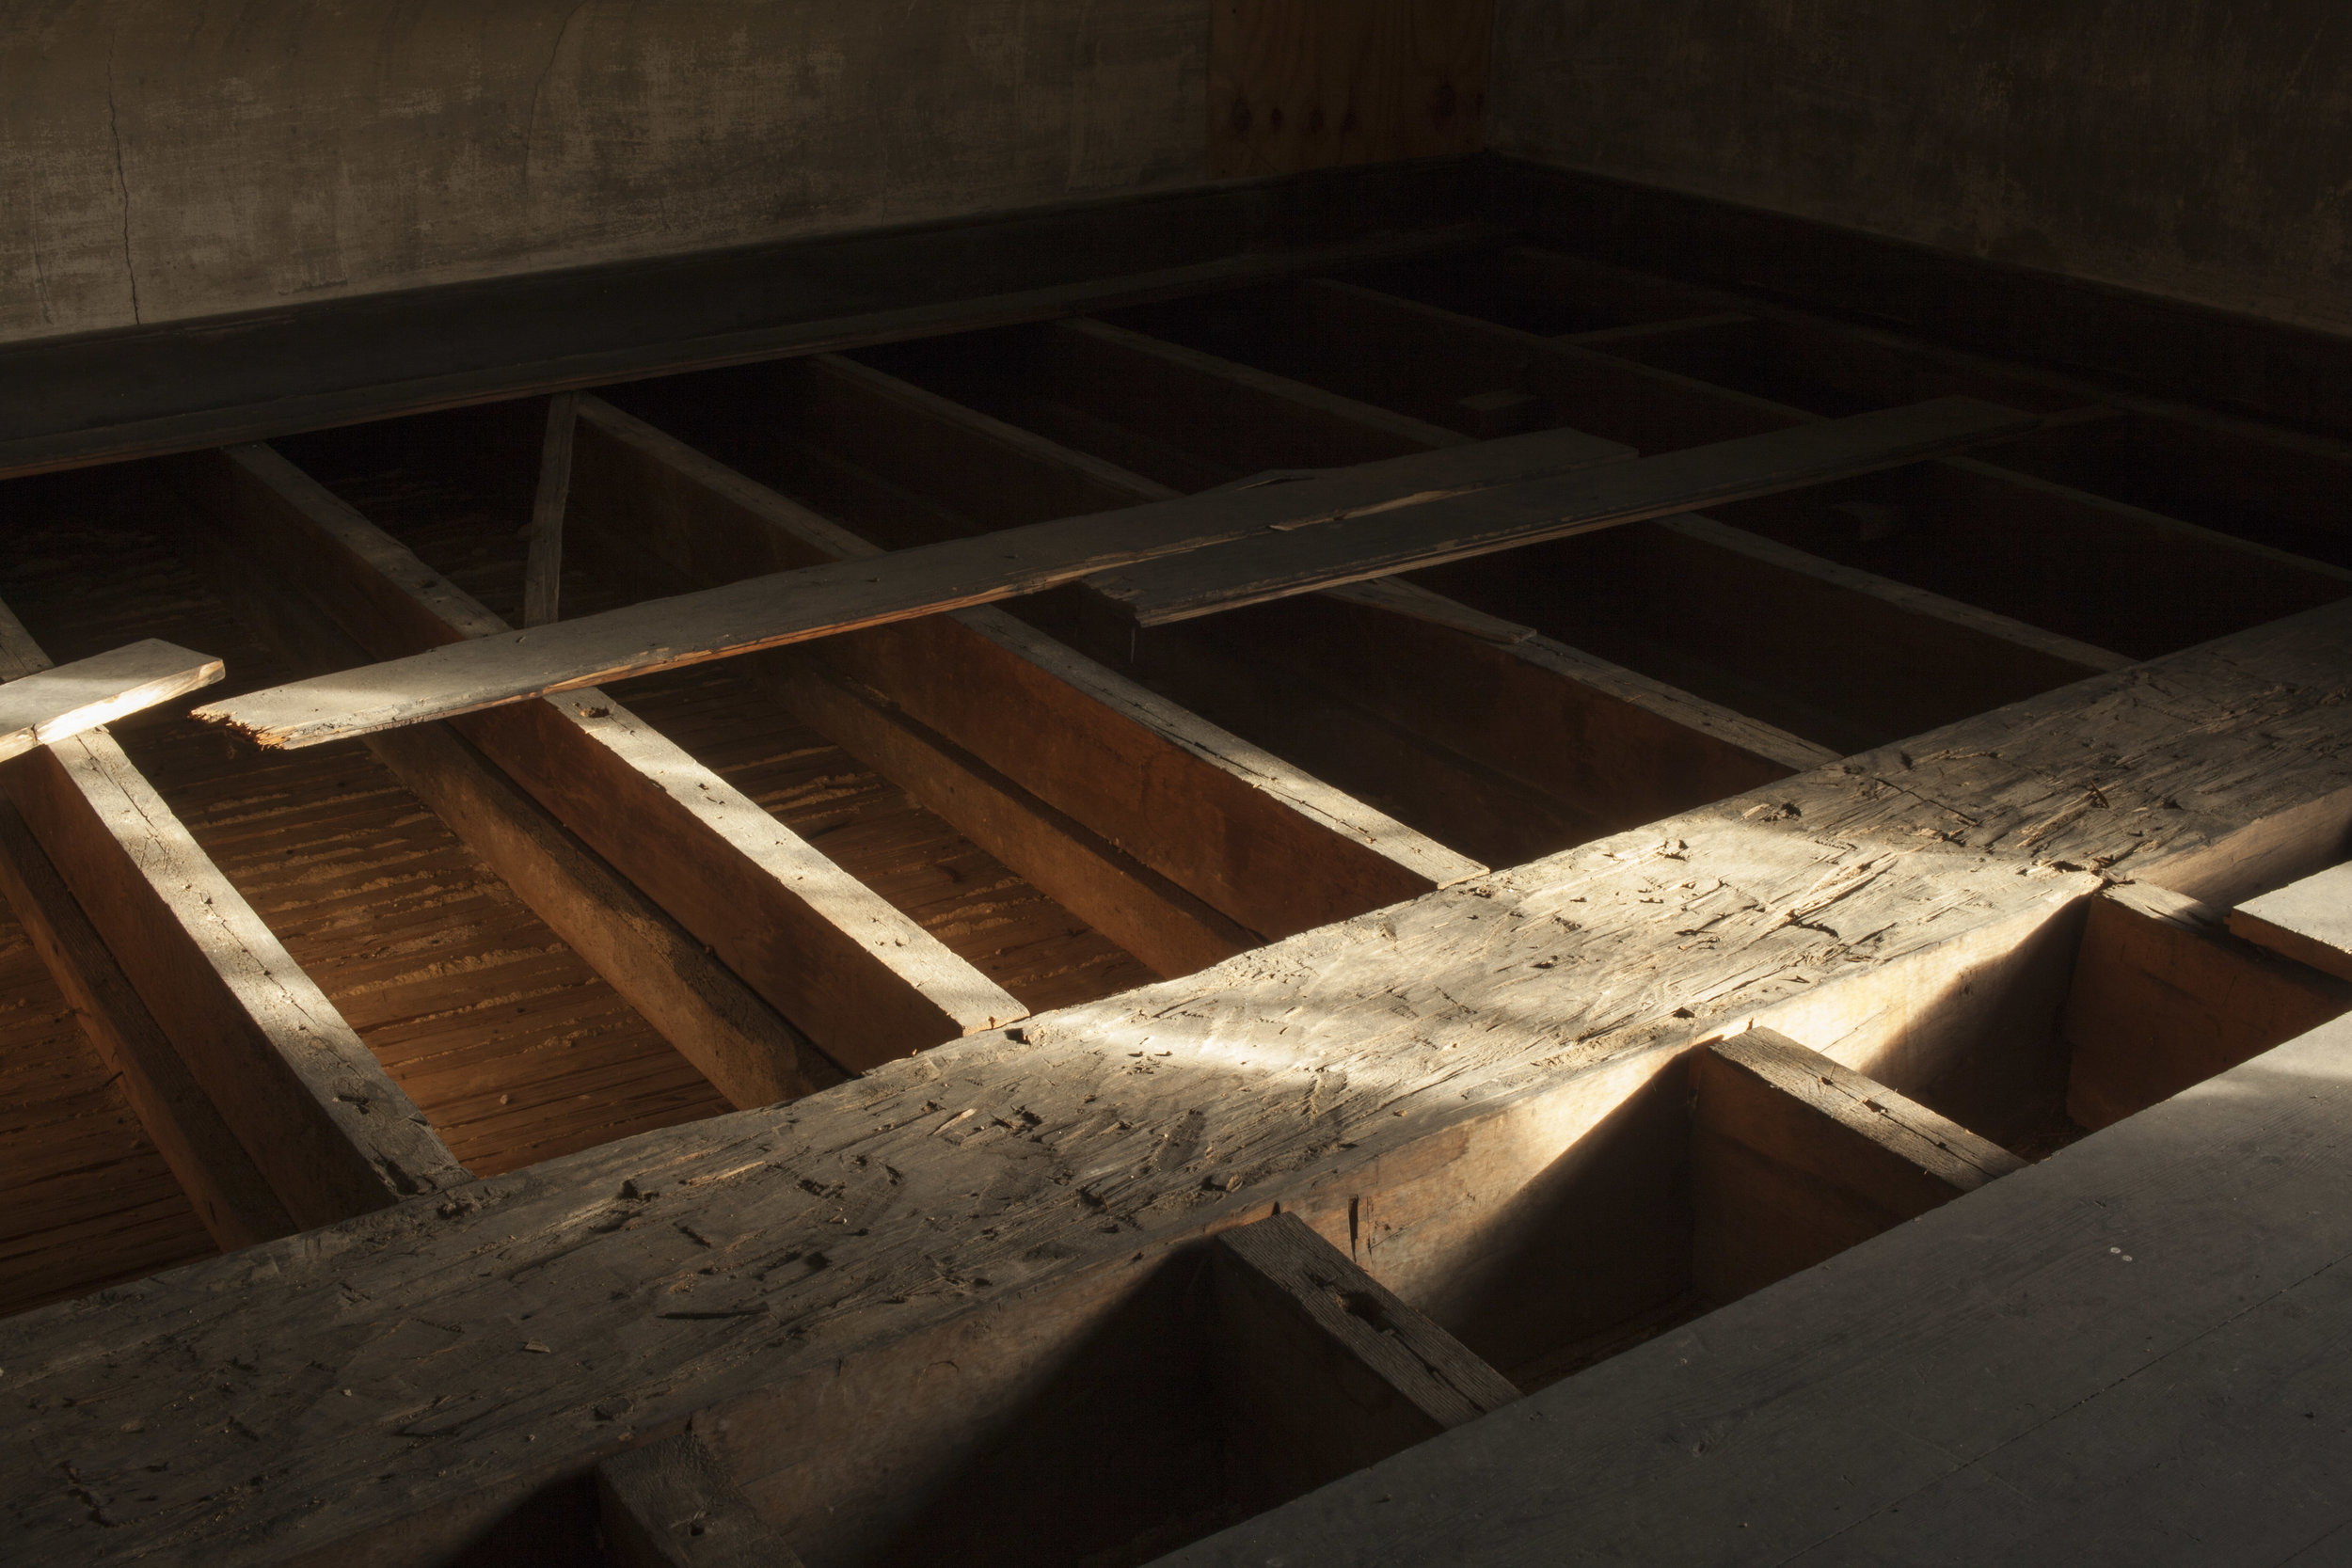 The seed packets were discovered between joists in the attic floor. Photo: Starr Herr-Cardillo